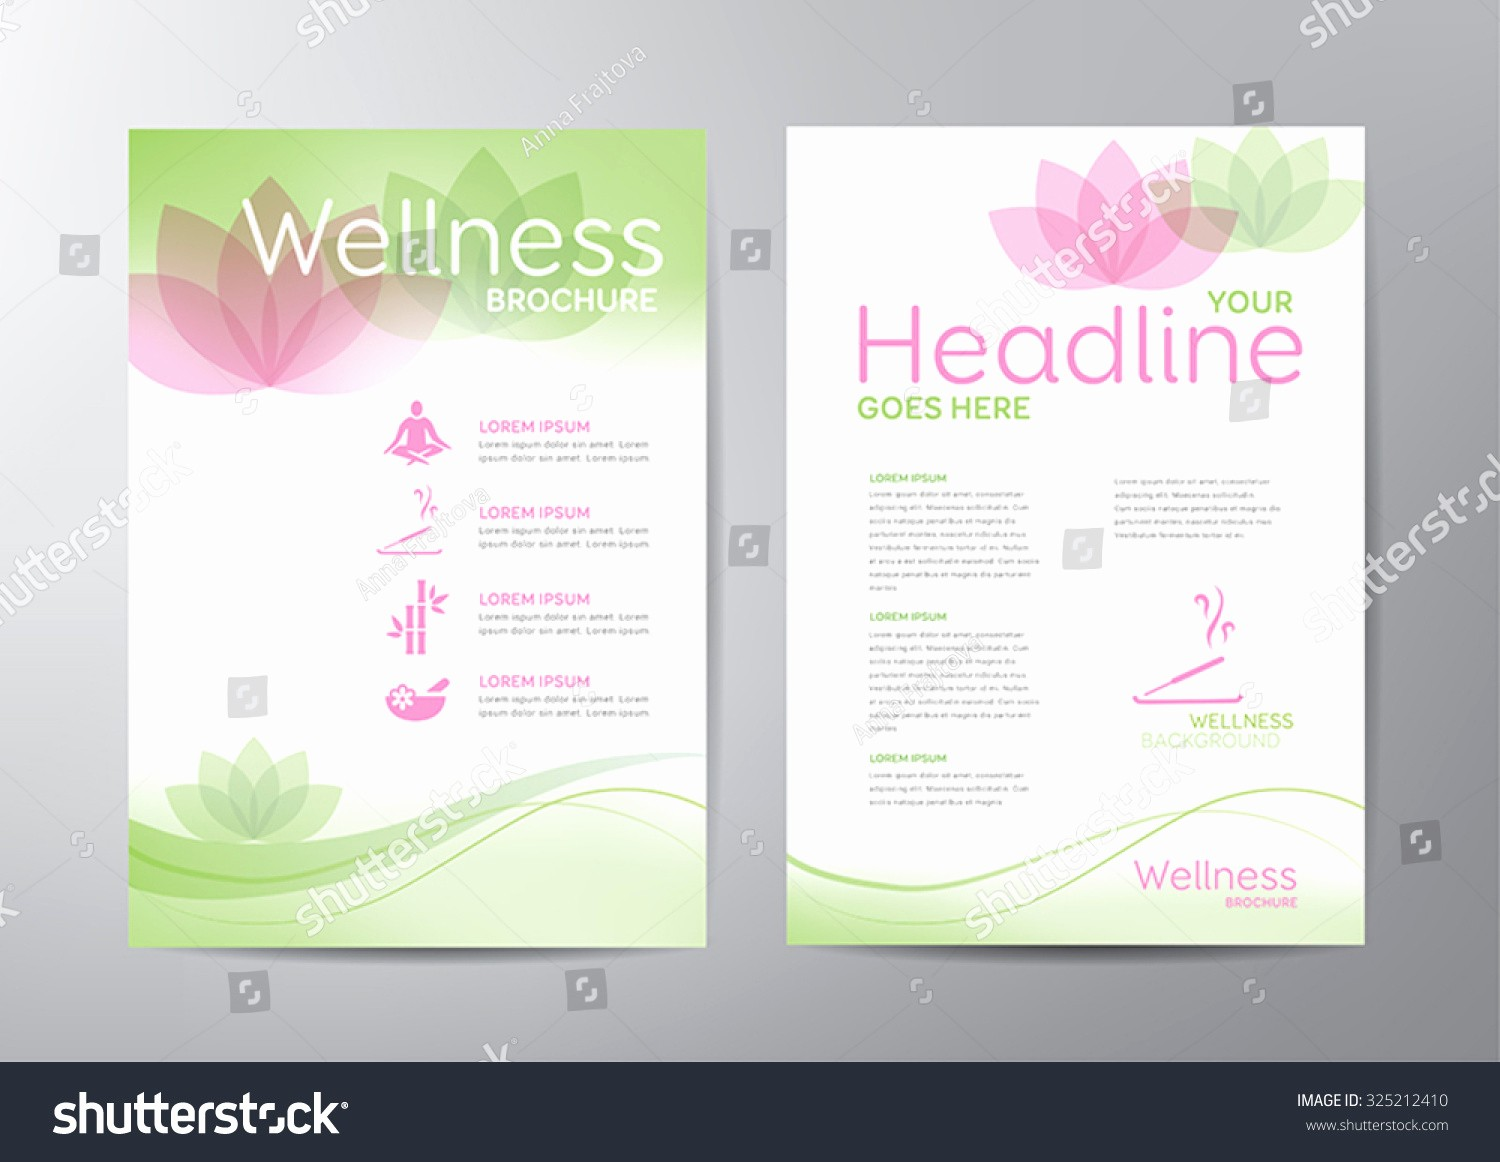 Healthcare Brochure Templates Free Download New Wellness Brochure Template Relaxation Healthcare Medical